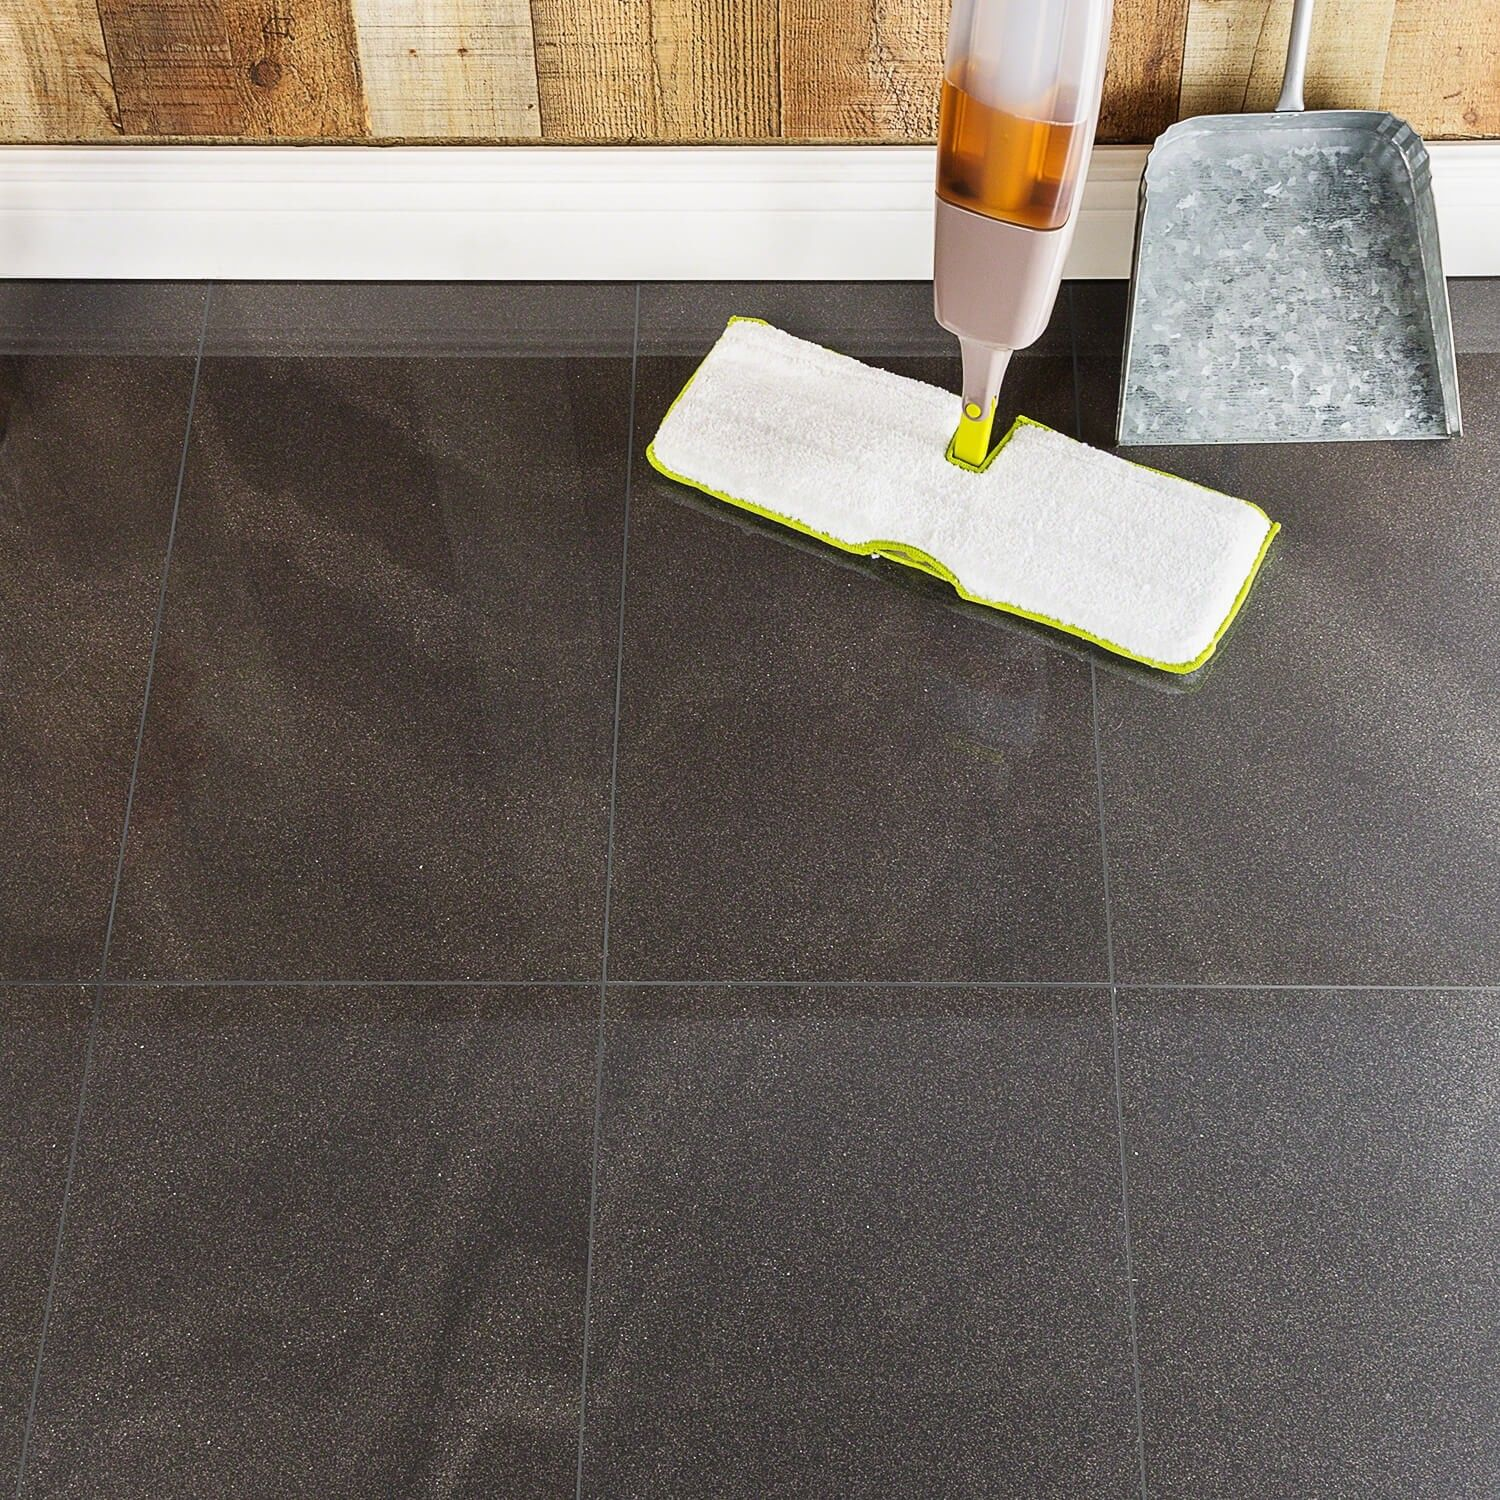 Touchstone Charcoal 12x24 Polished Porcelain Tile Polished Porcelain Tiles Charcoal Kitchen Porcelain Tile